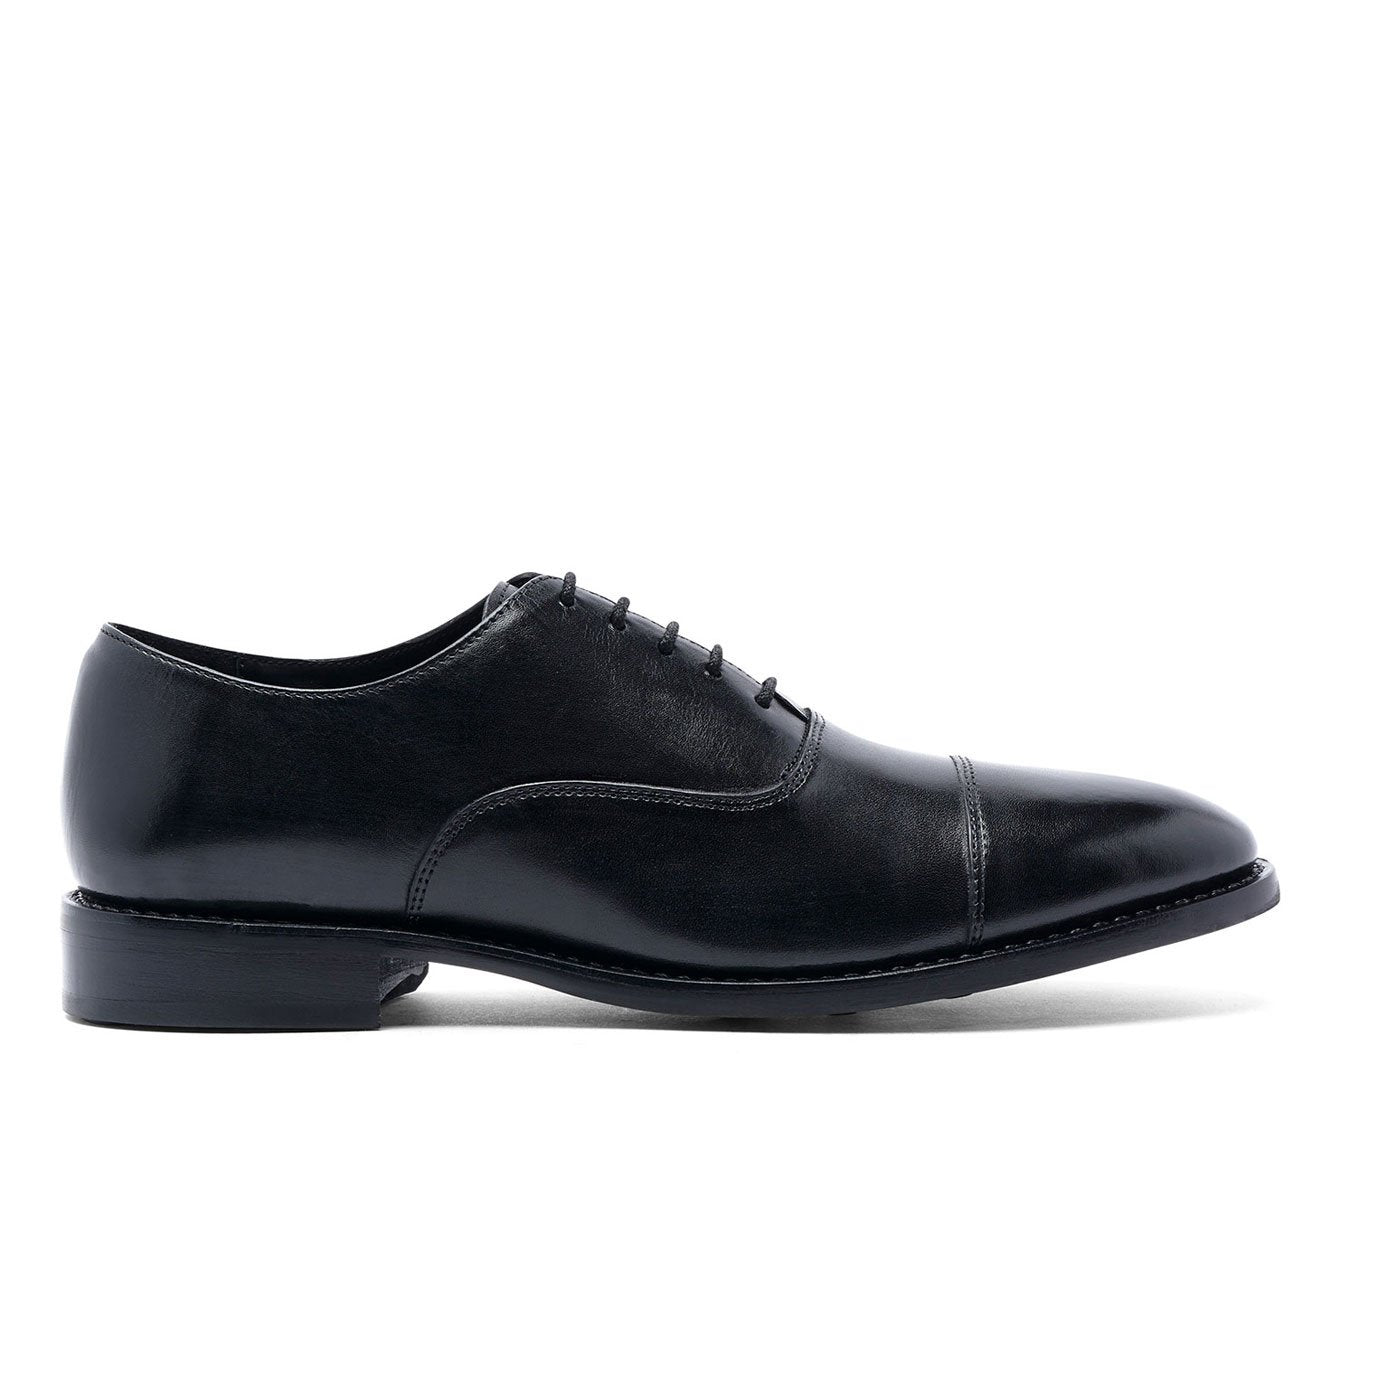 Clinton Cap Toe Oxford, Rubber Sole